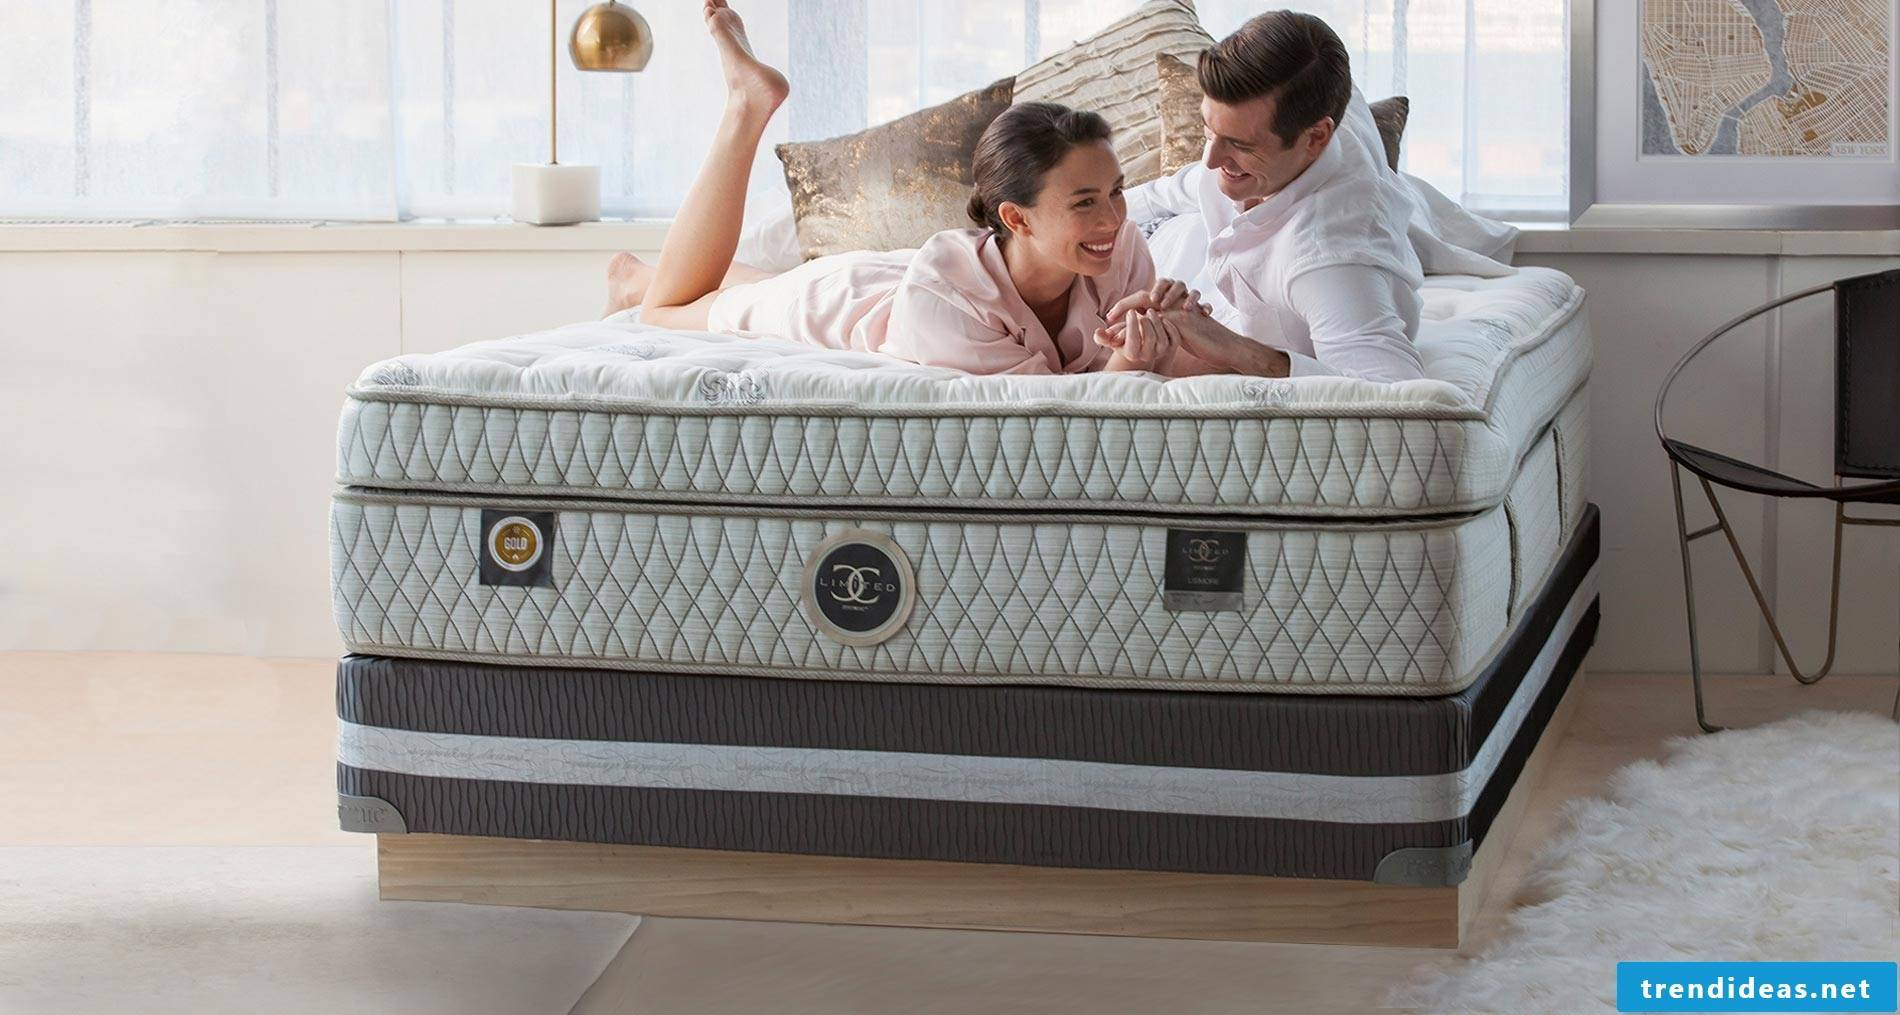 Mattress purchase - Is Boxspring the right mattress for you?